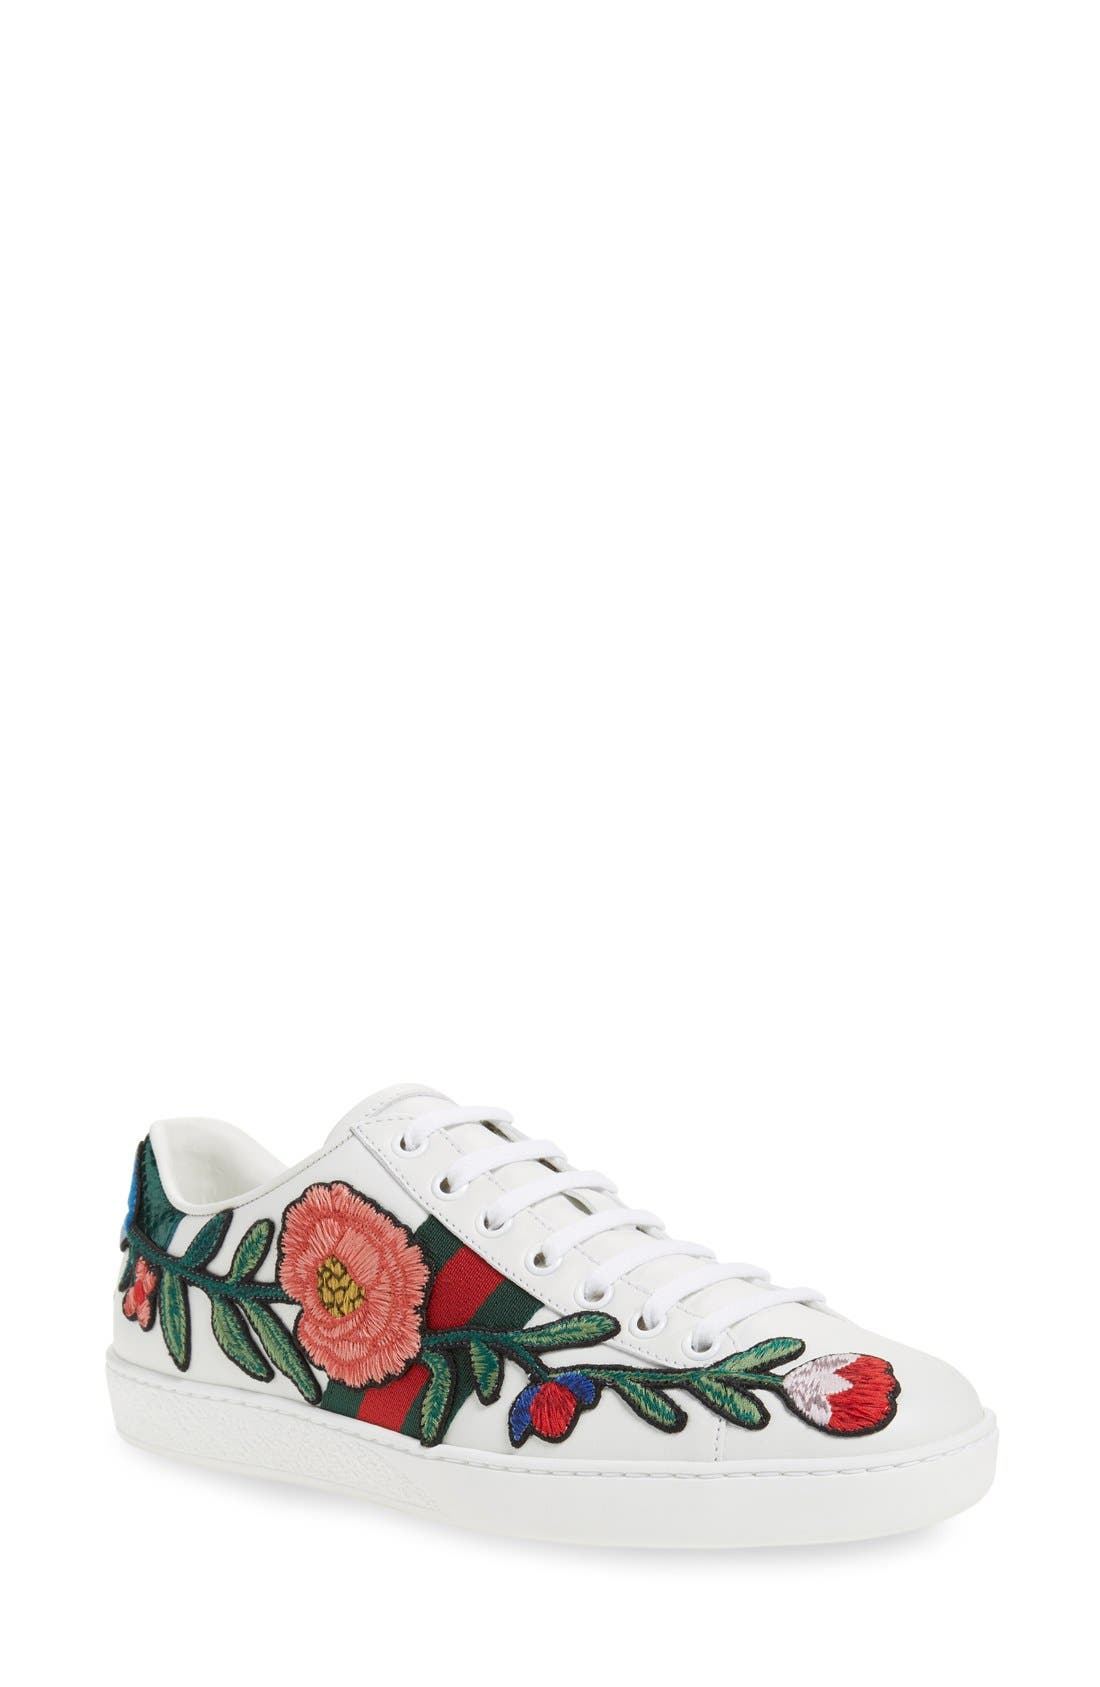 'New Ace' Low Top Sneaker,                             Main thumbnail 1, color,                             White Floral